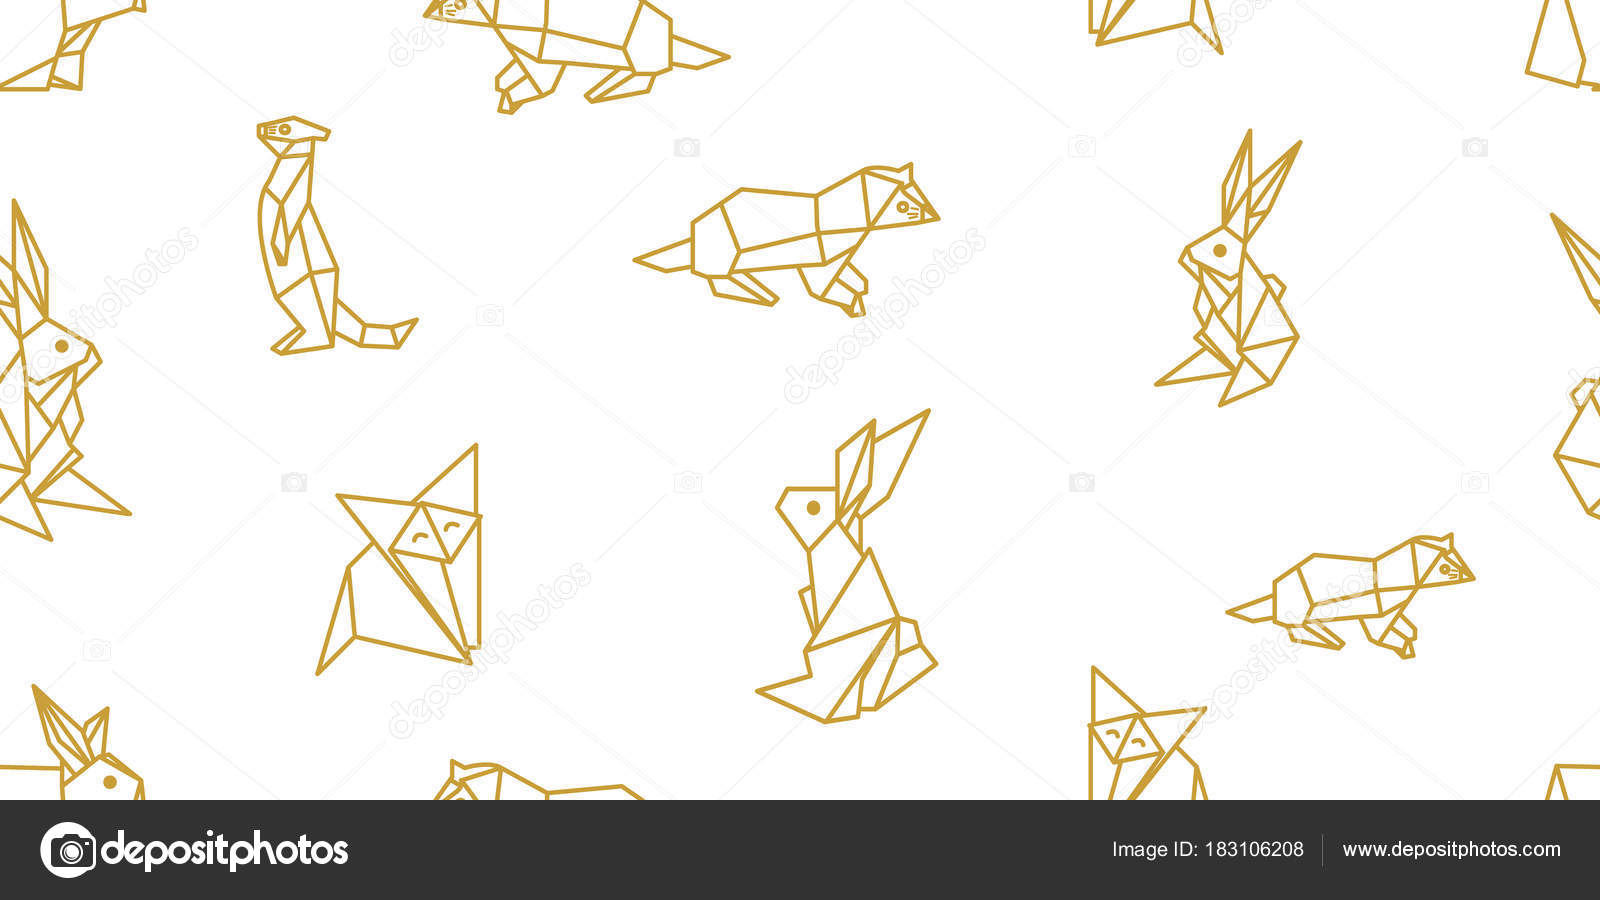 Origami animals seamless vector pattern with hares foxes otters origami animals seamless vector pattern with hares foxes otters stock vector jeuxipadfo Choice Image